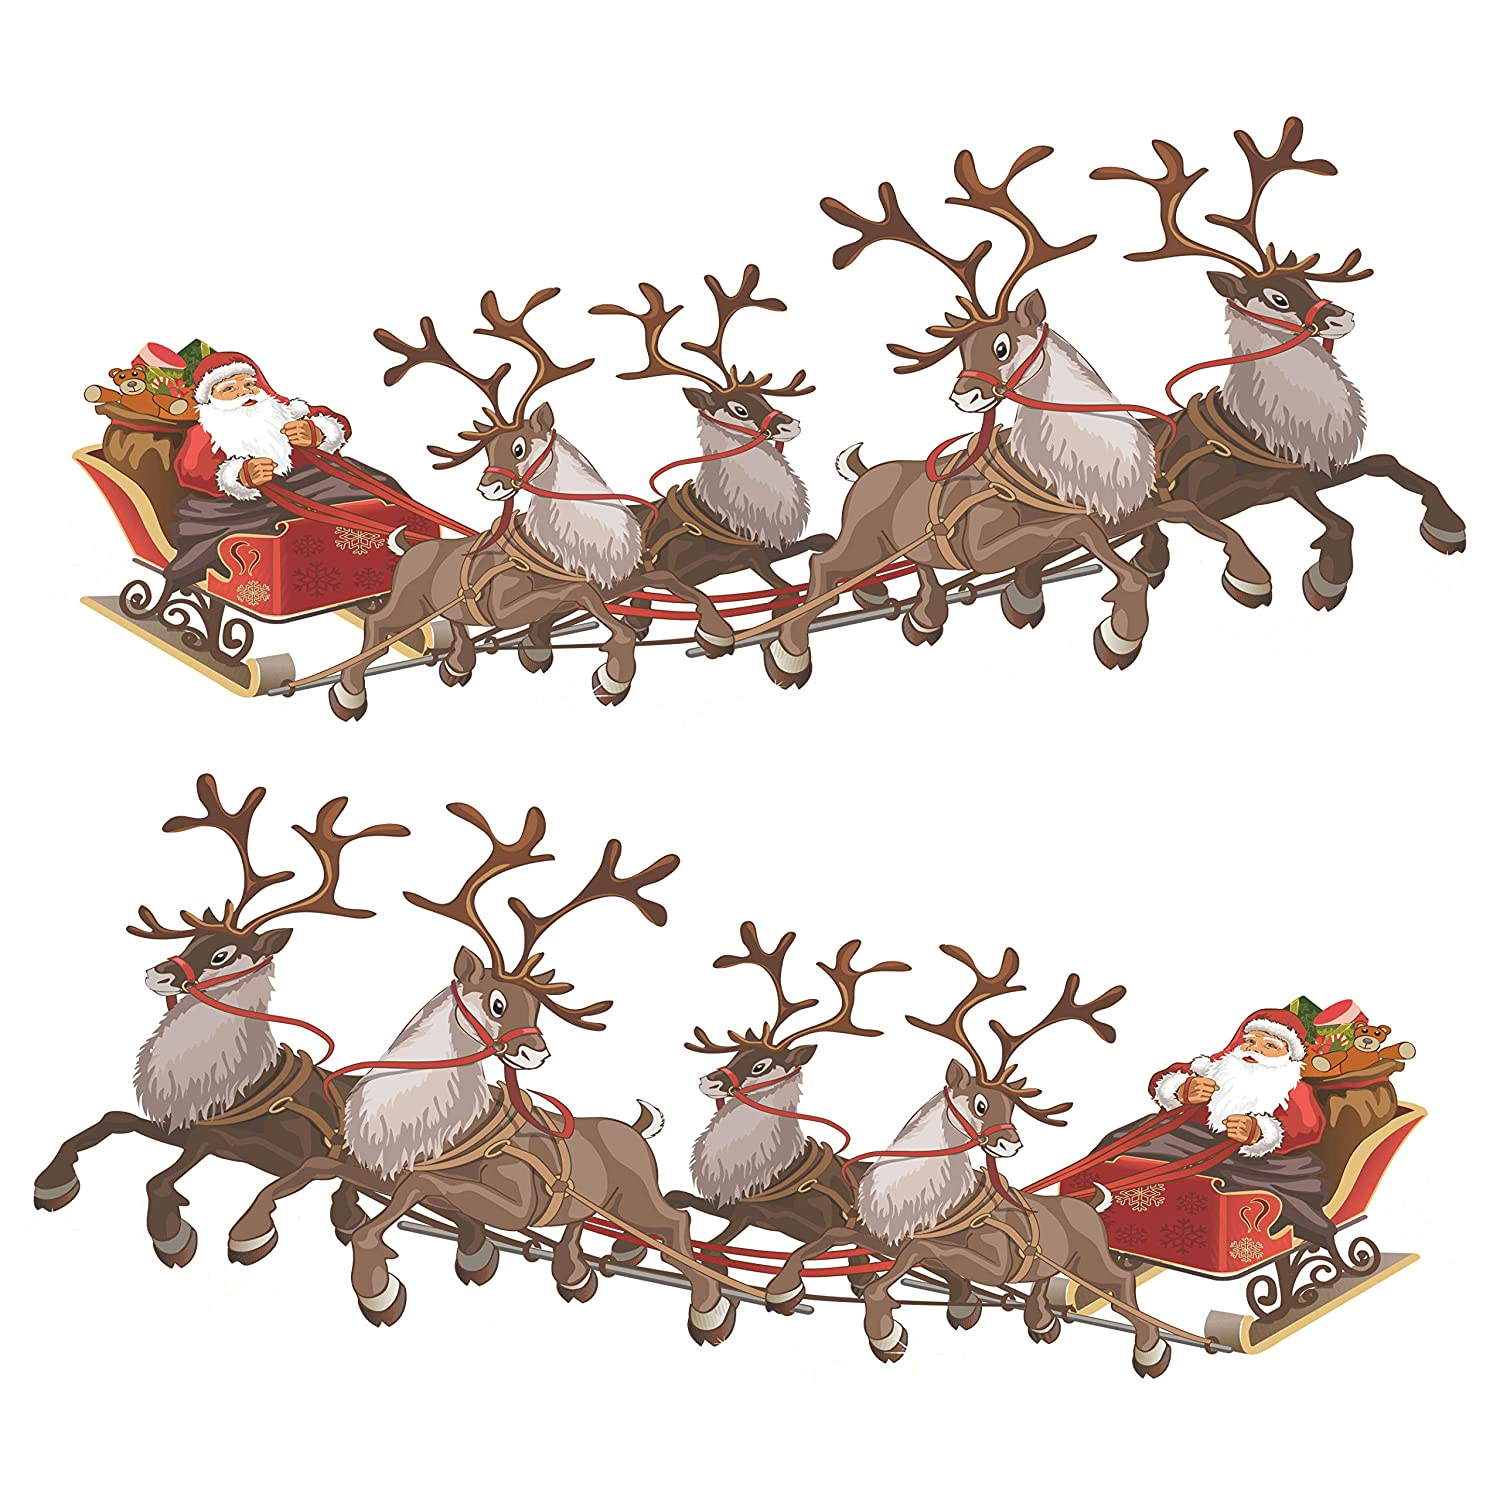 Christmas Reindeer.Set Of 2 Small Santa Sleigh And Reindeer Full Colour Window Cling Sticker Christmas Window Decorations By Stickers4 Small